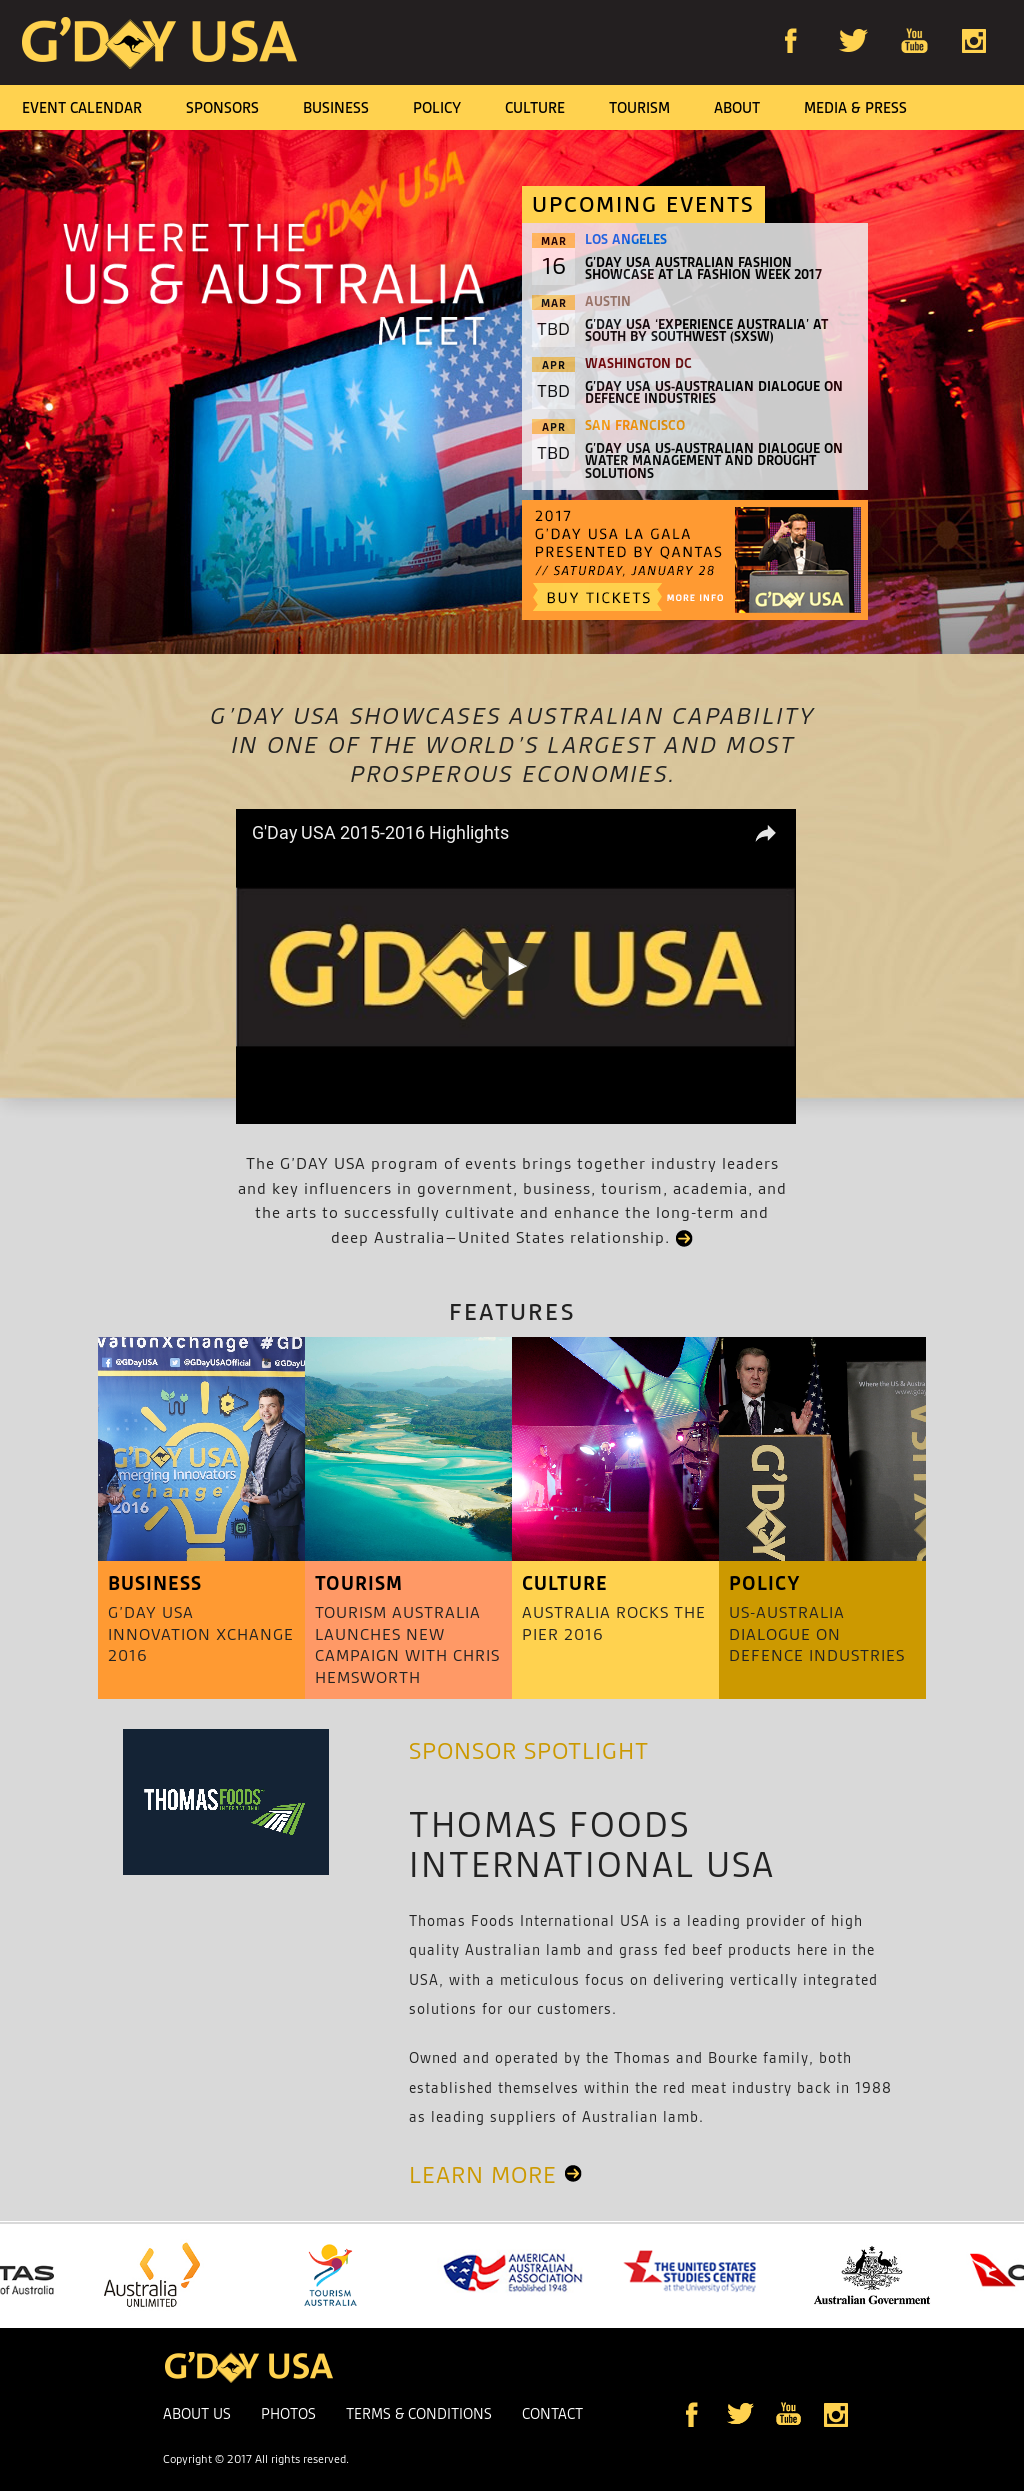 Gdayusa Competitors, Revenue and Employees - Owler Company